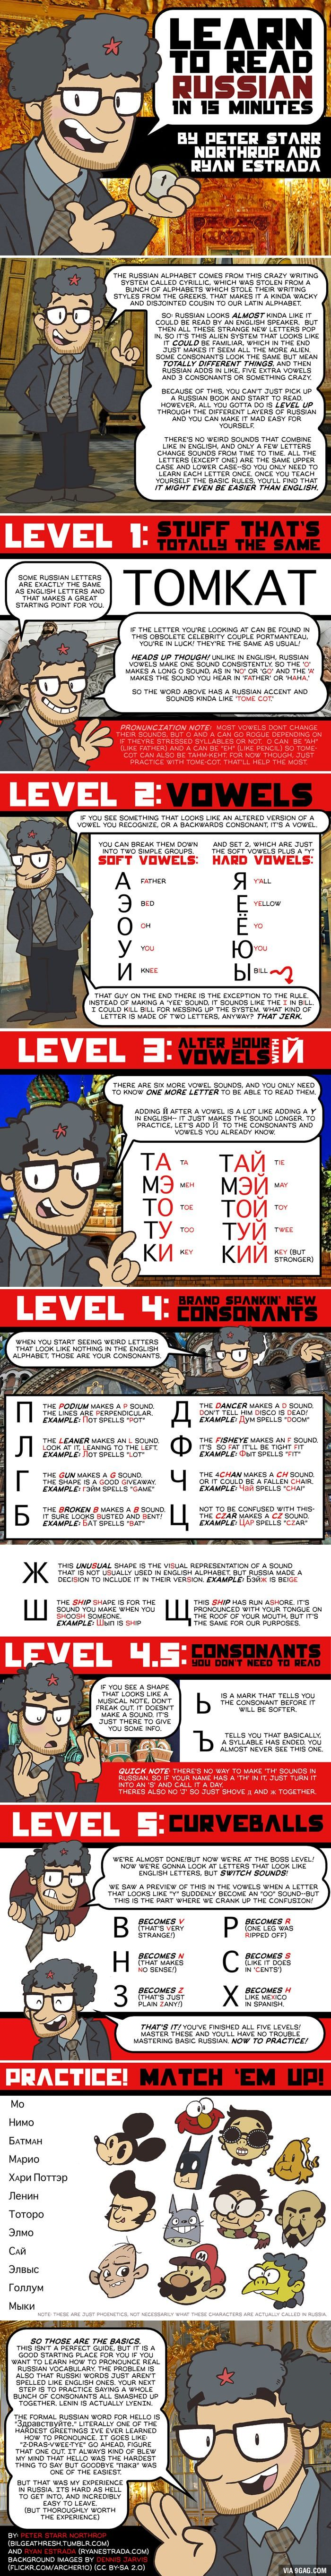 Learn to read #russian in 15 minutes (Is this real life?) http://9gag.com/gag/aqZbPmp?ref=fsidebar